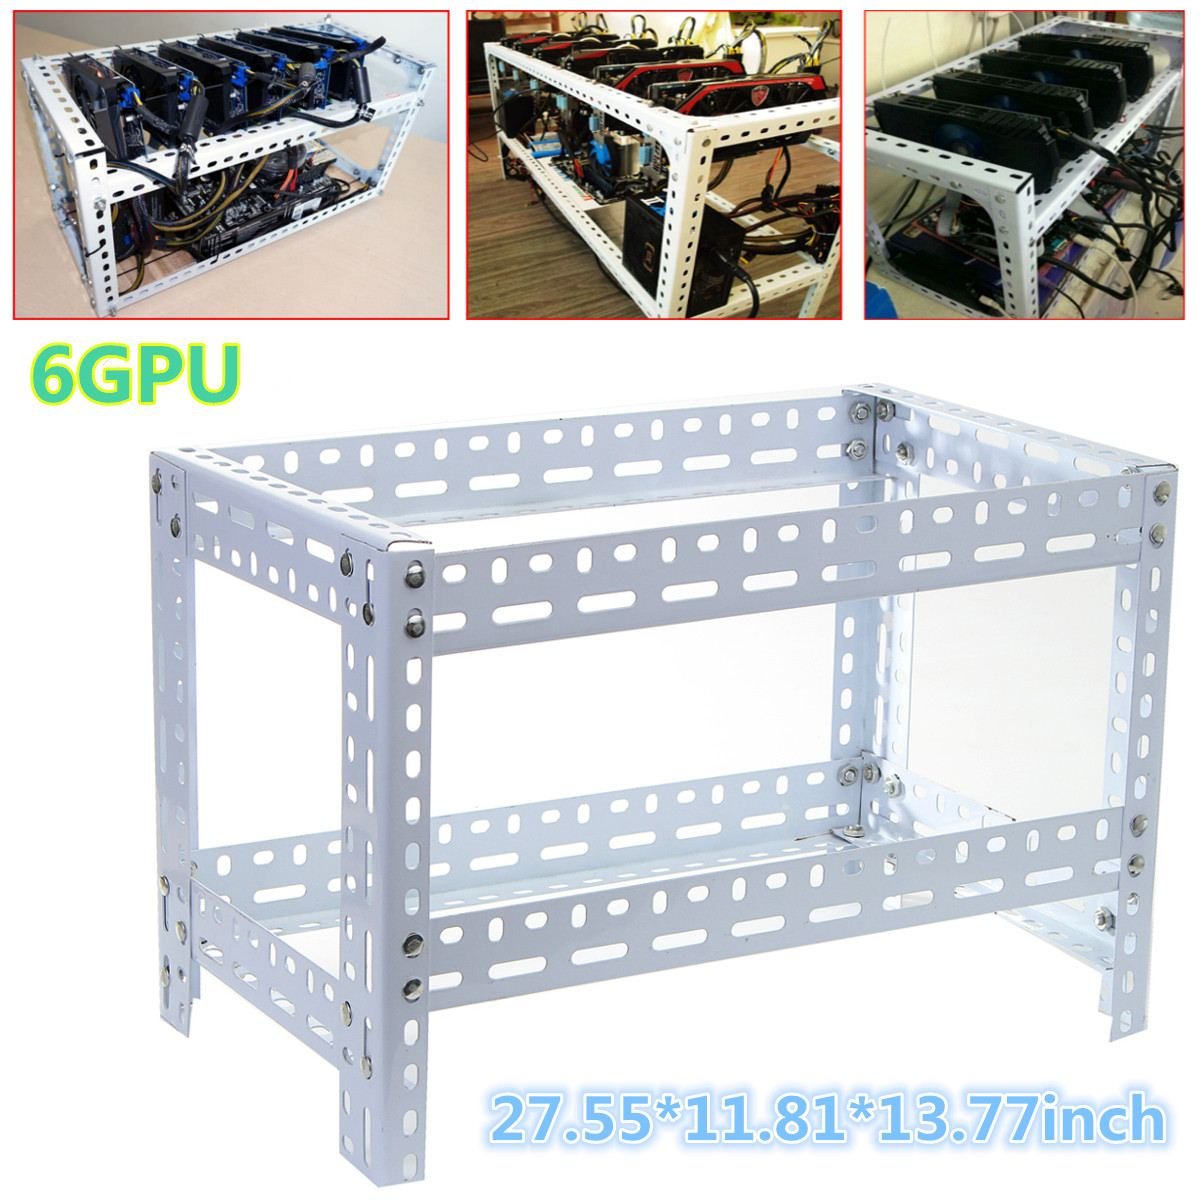 6/7/8 GPU Coin Open Air Mining Miner Frame Rig Case Holder Steel Shelf Ethereum6/7/8 GPU Coin Open Air Mining Miner Frame Rig Case Holder Steel Shelf Ethereum